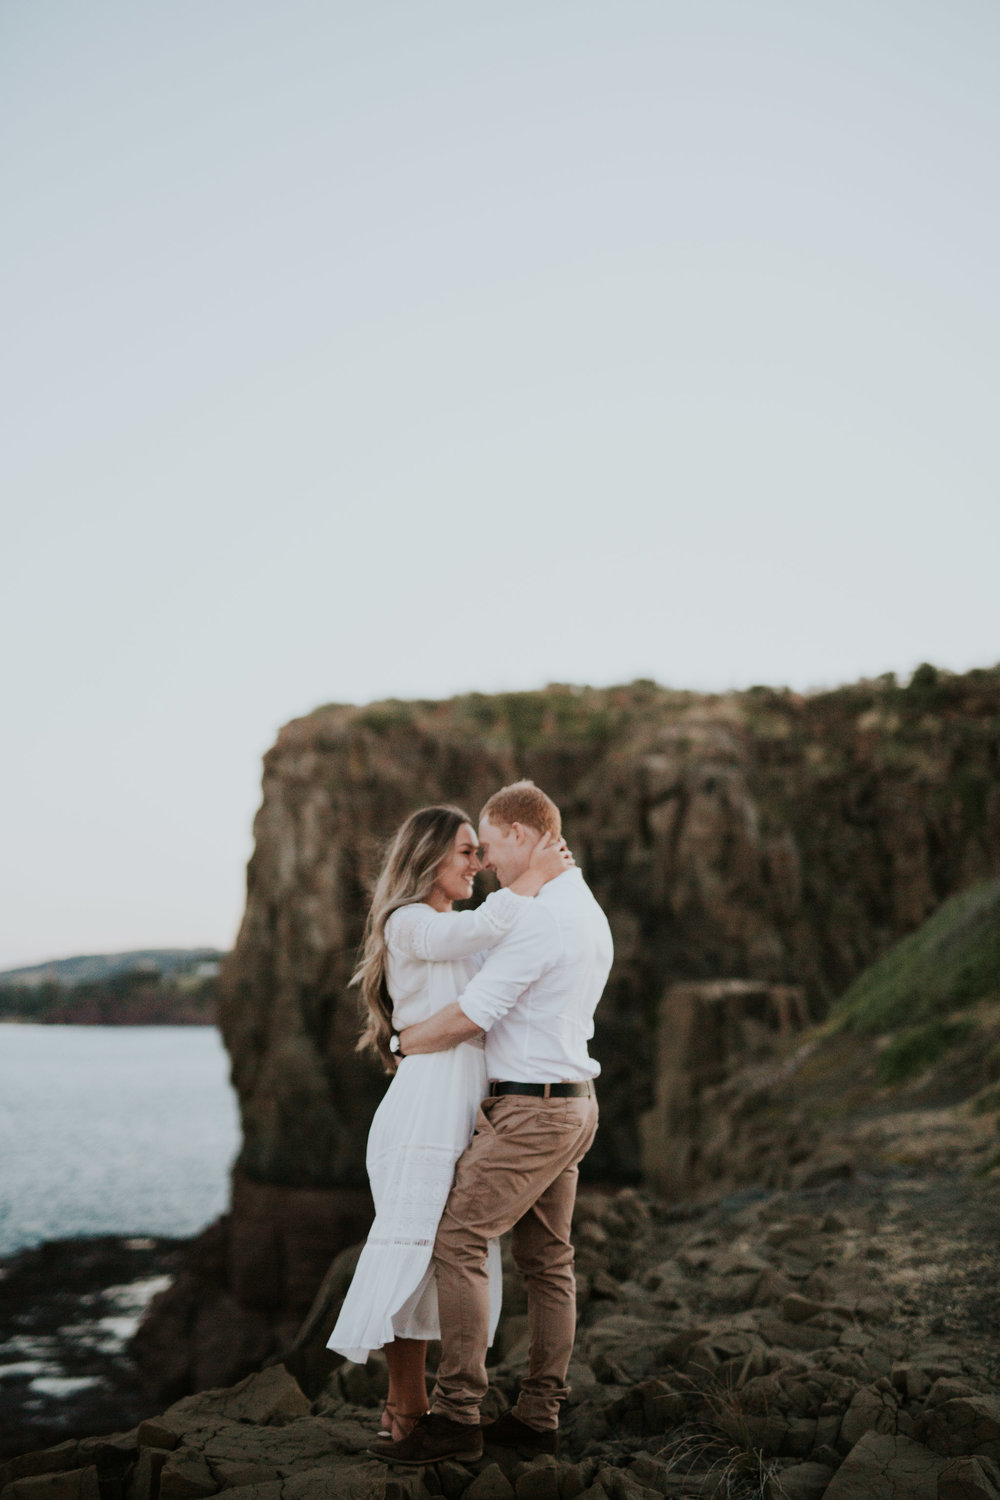 shanae+grant+Kiama+Engagement+Session-75.jpg